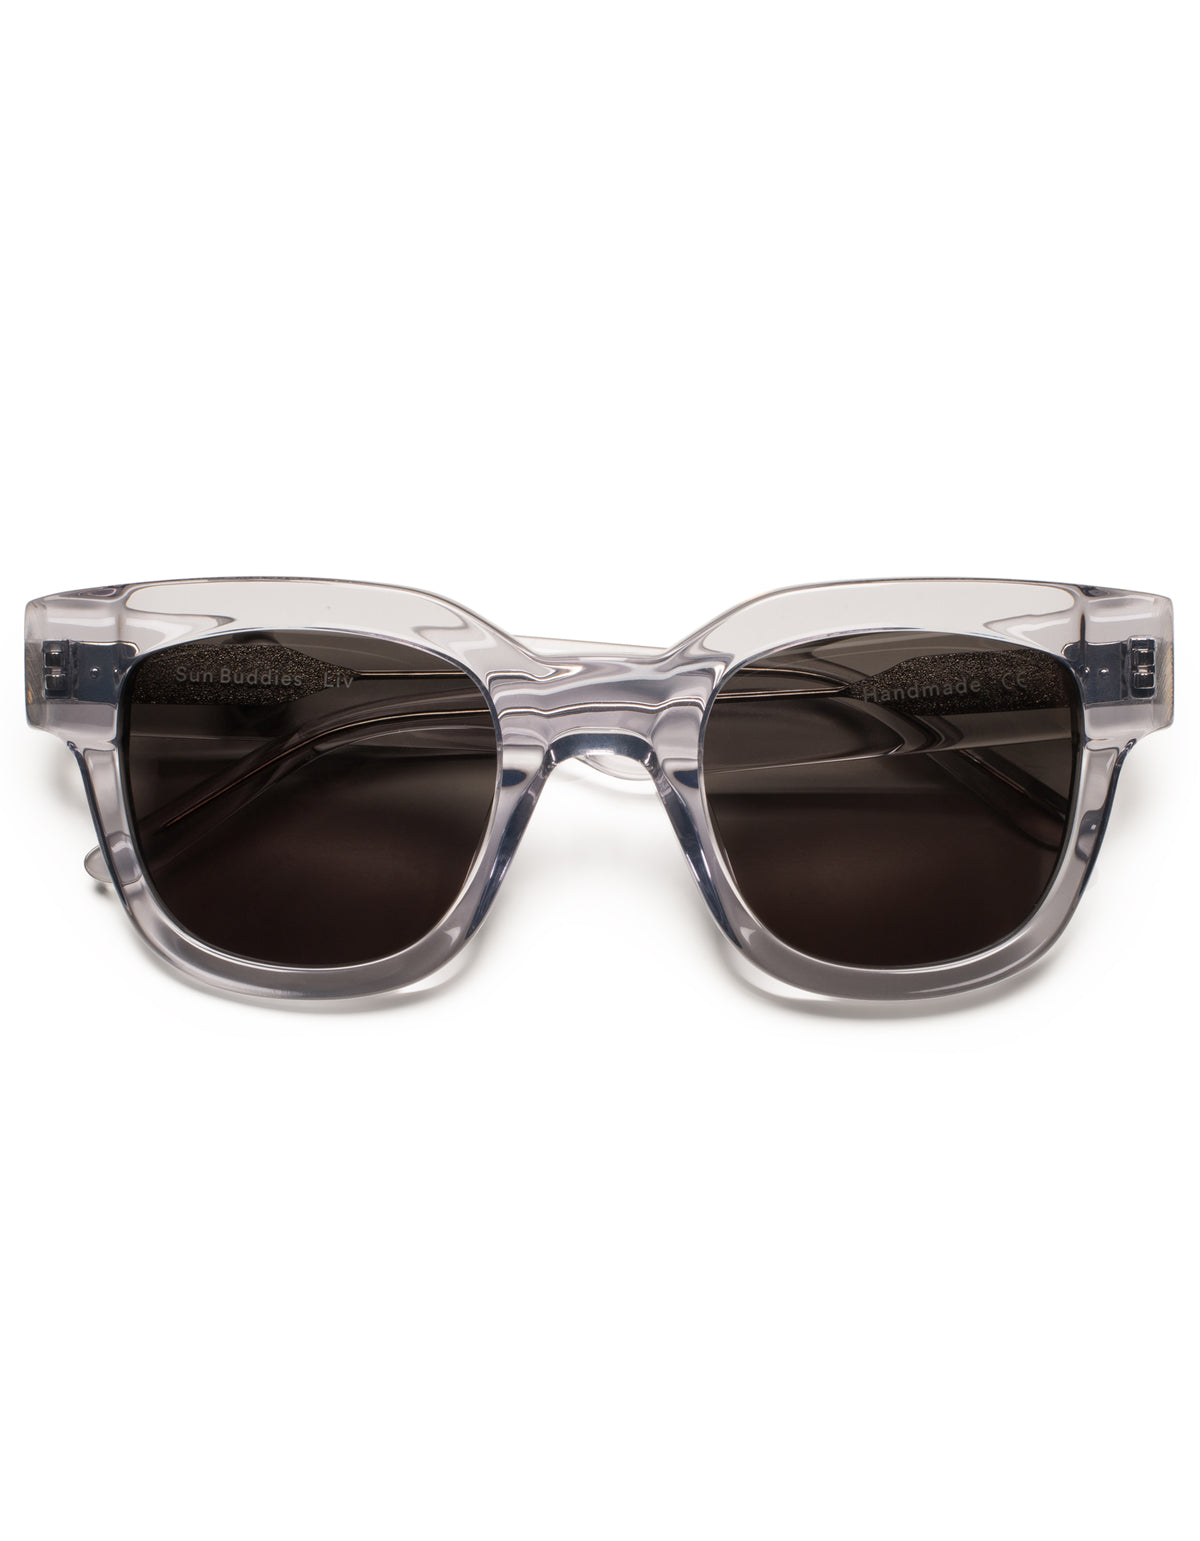 Sun Buddies Liv Sunglasses Clear Water